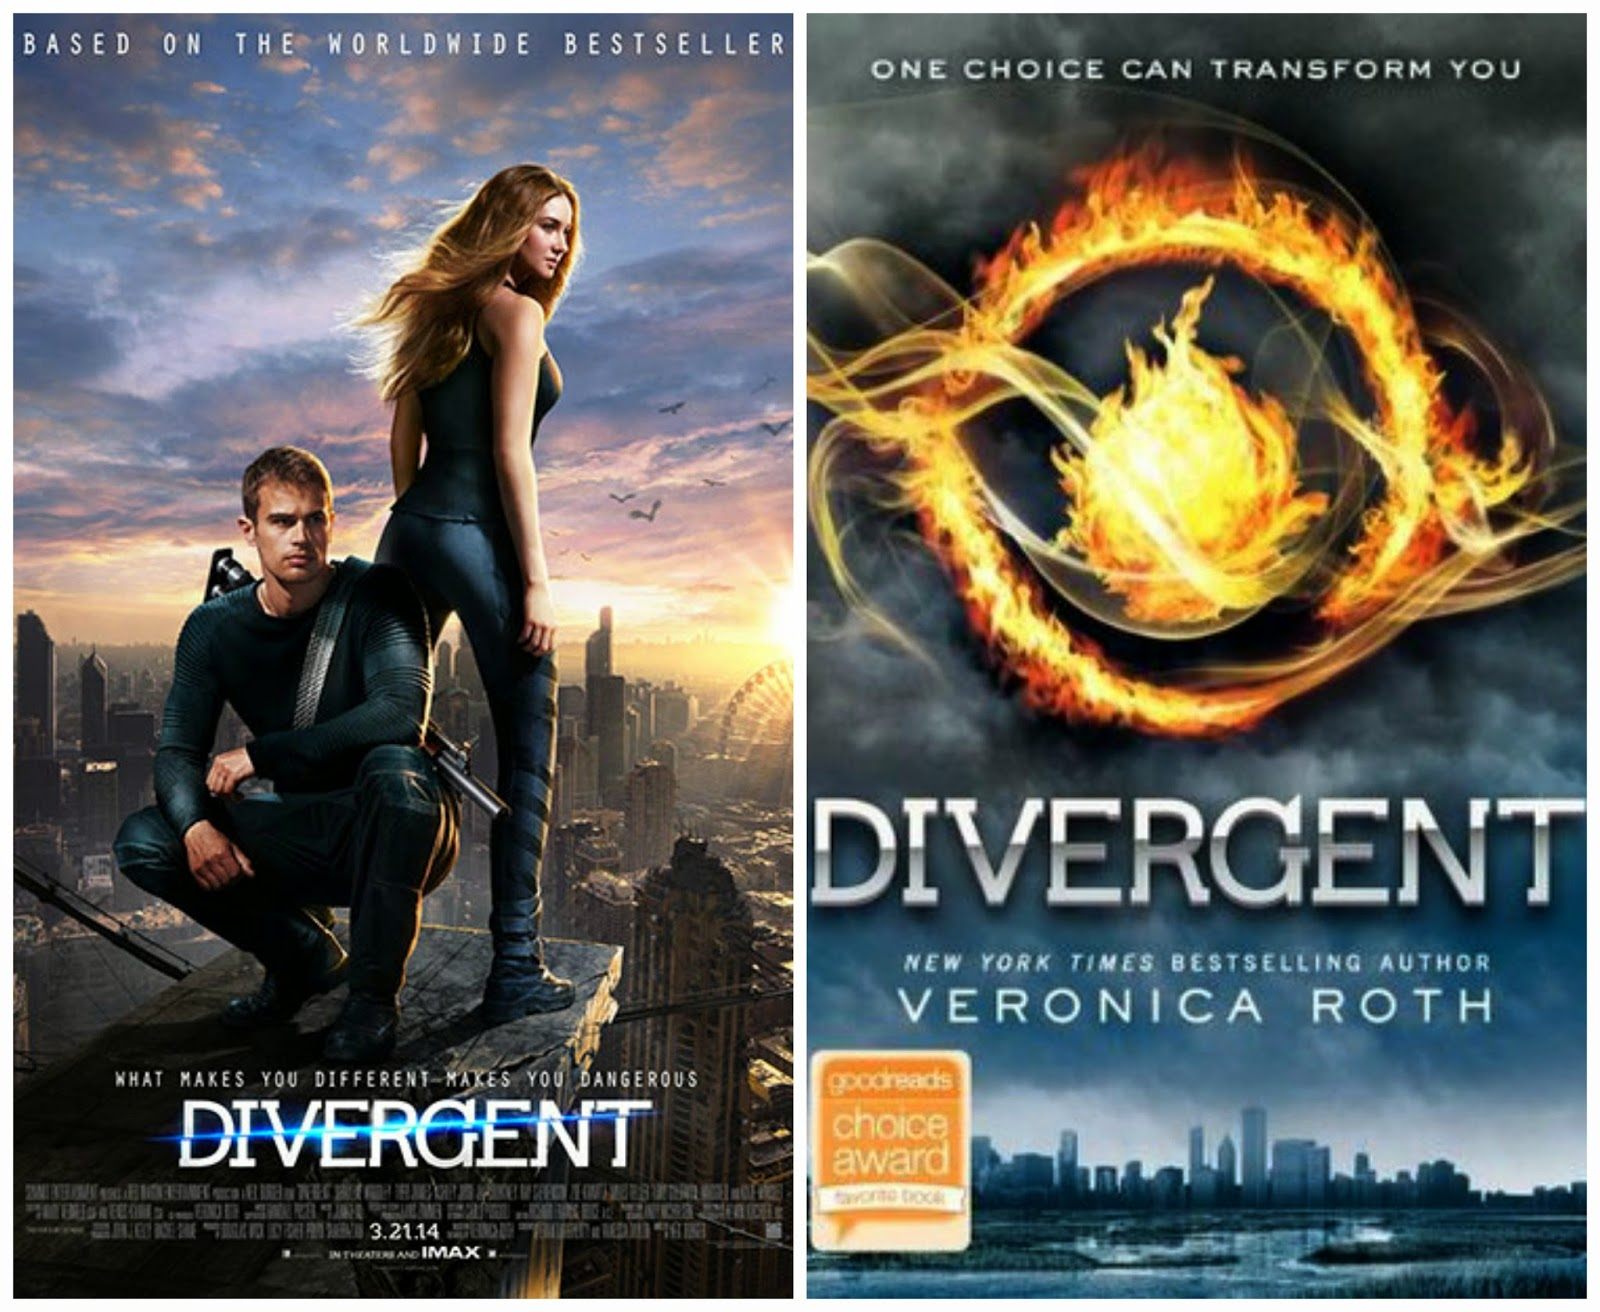 Divergent Book Cover Pictures : Divergent book vs movie juliana grace